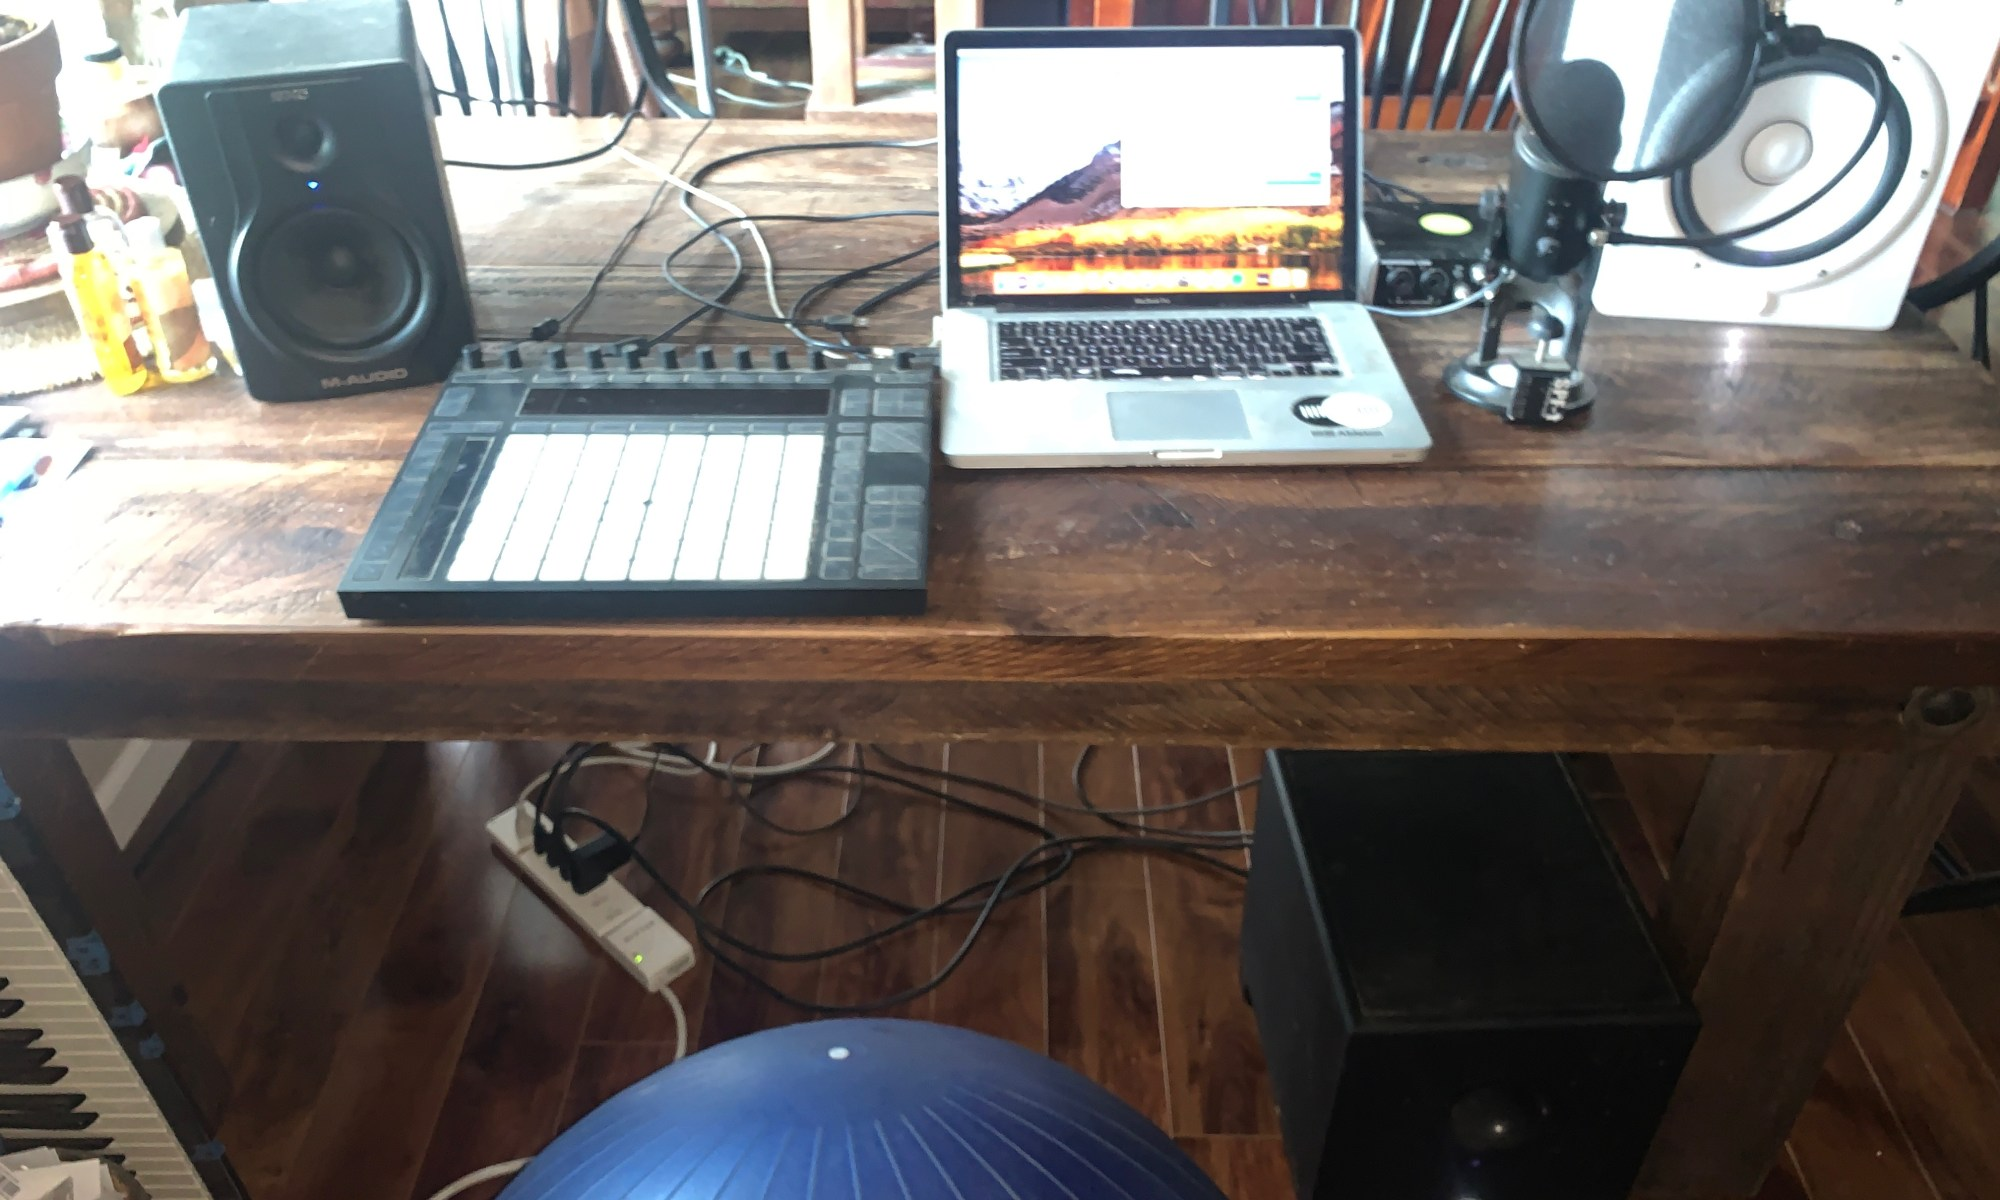 Independent Music Production Studio